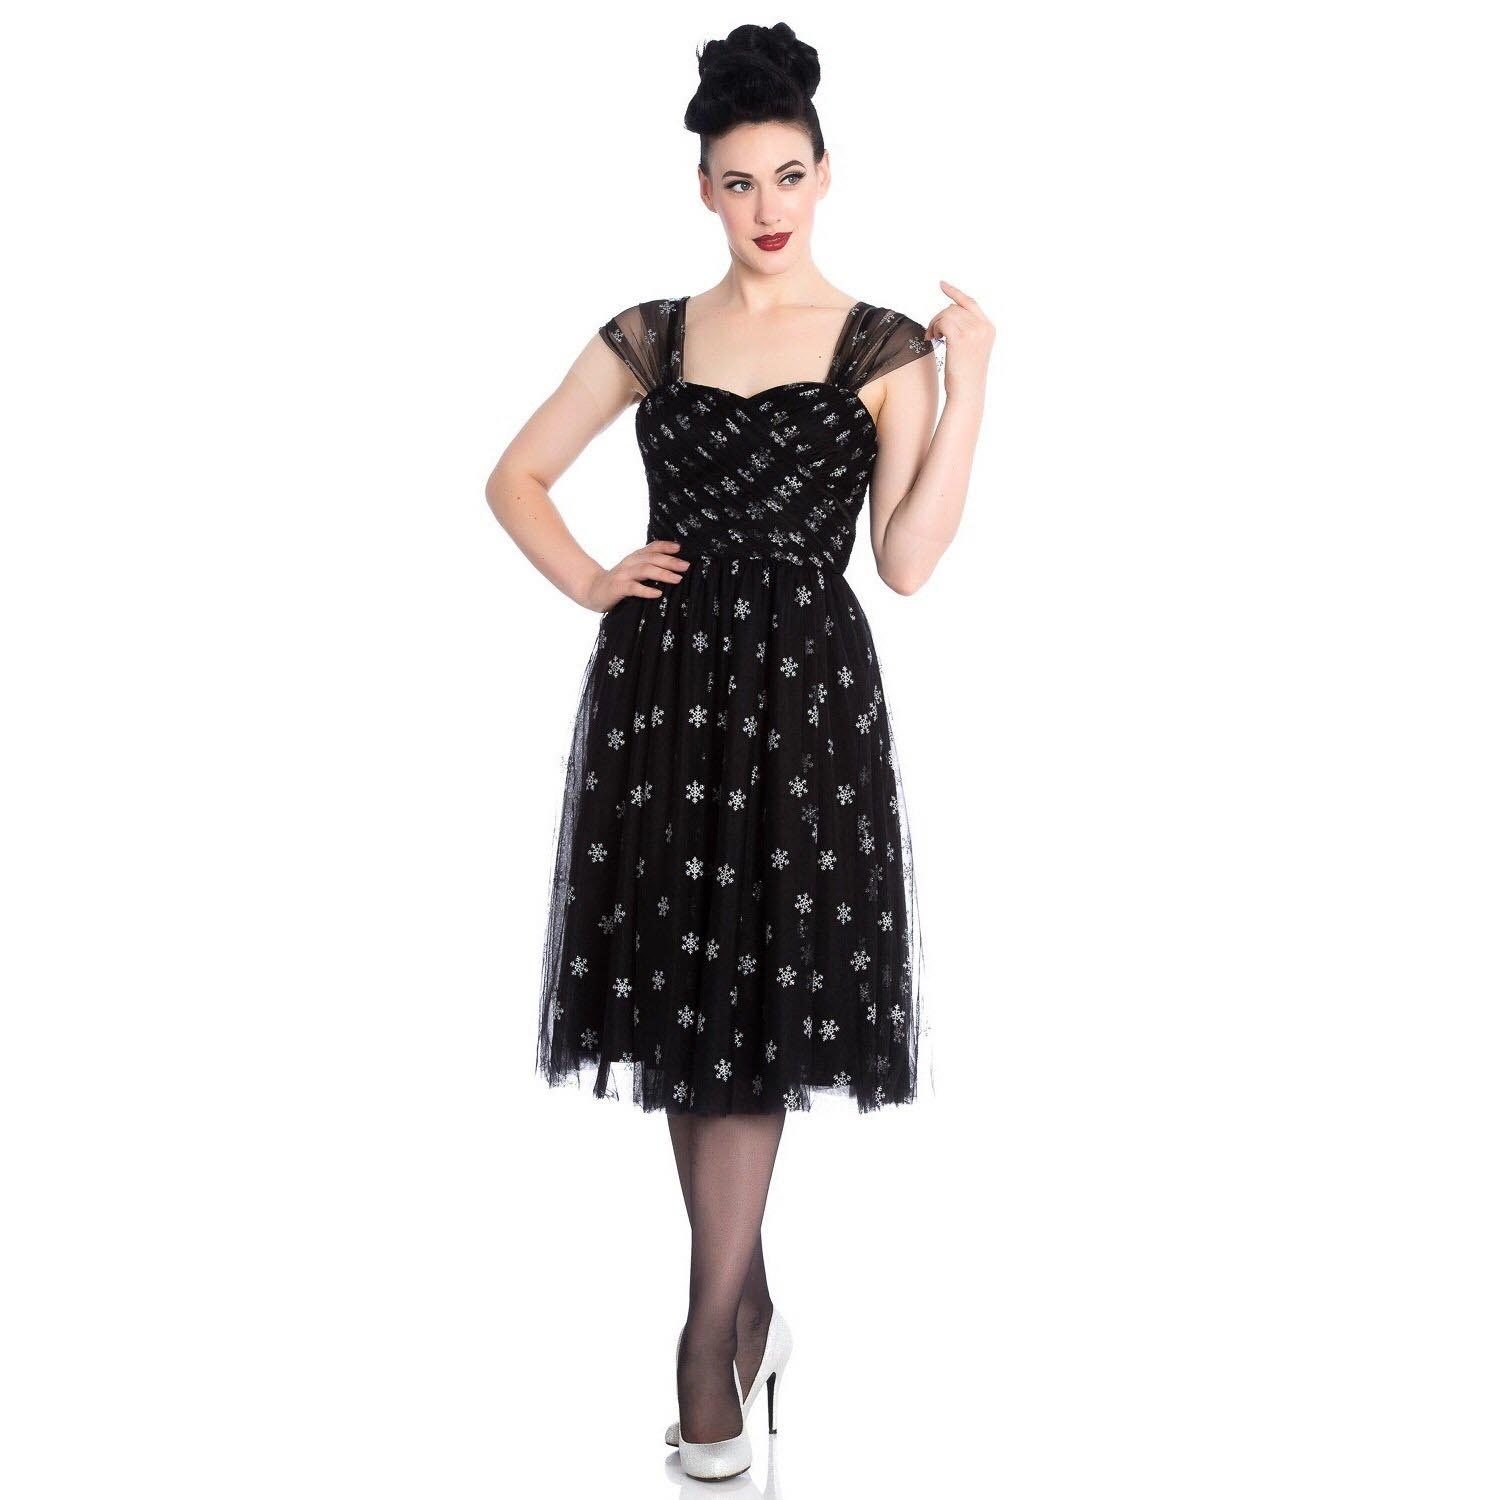 Hell-Bunny-50s-Black-Christmas-Dress-SNOWSTAR-Glitter-Snowflakes-All-Sizes thumbnail 7